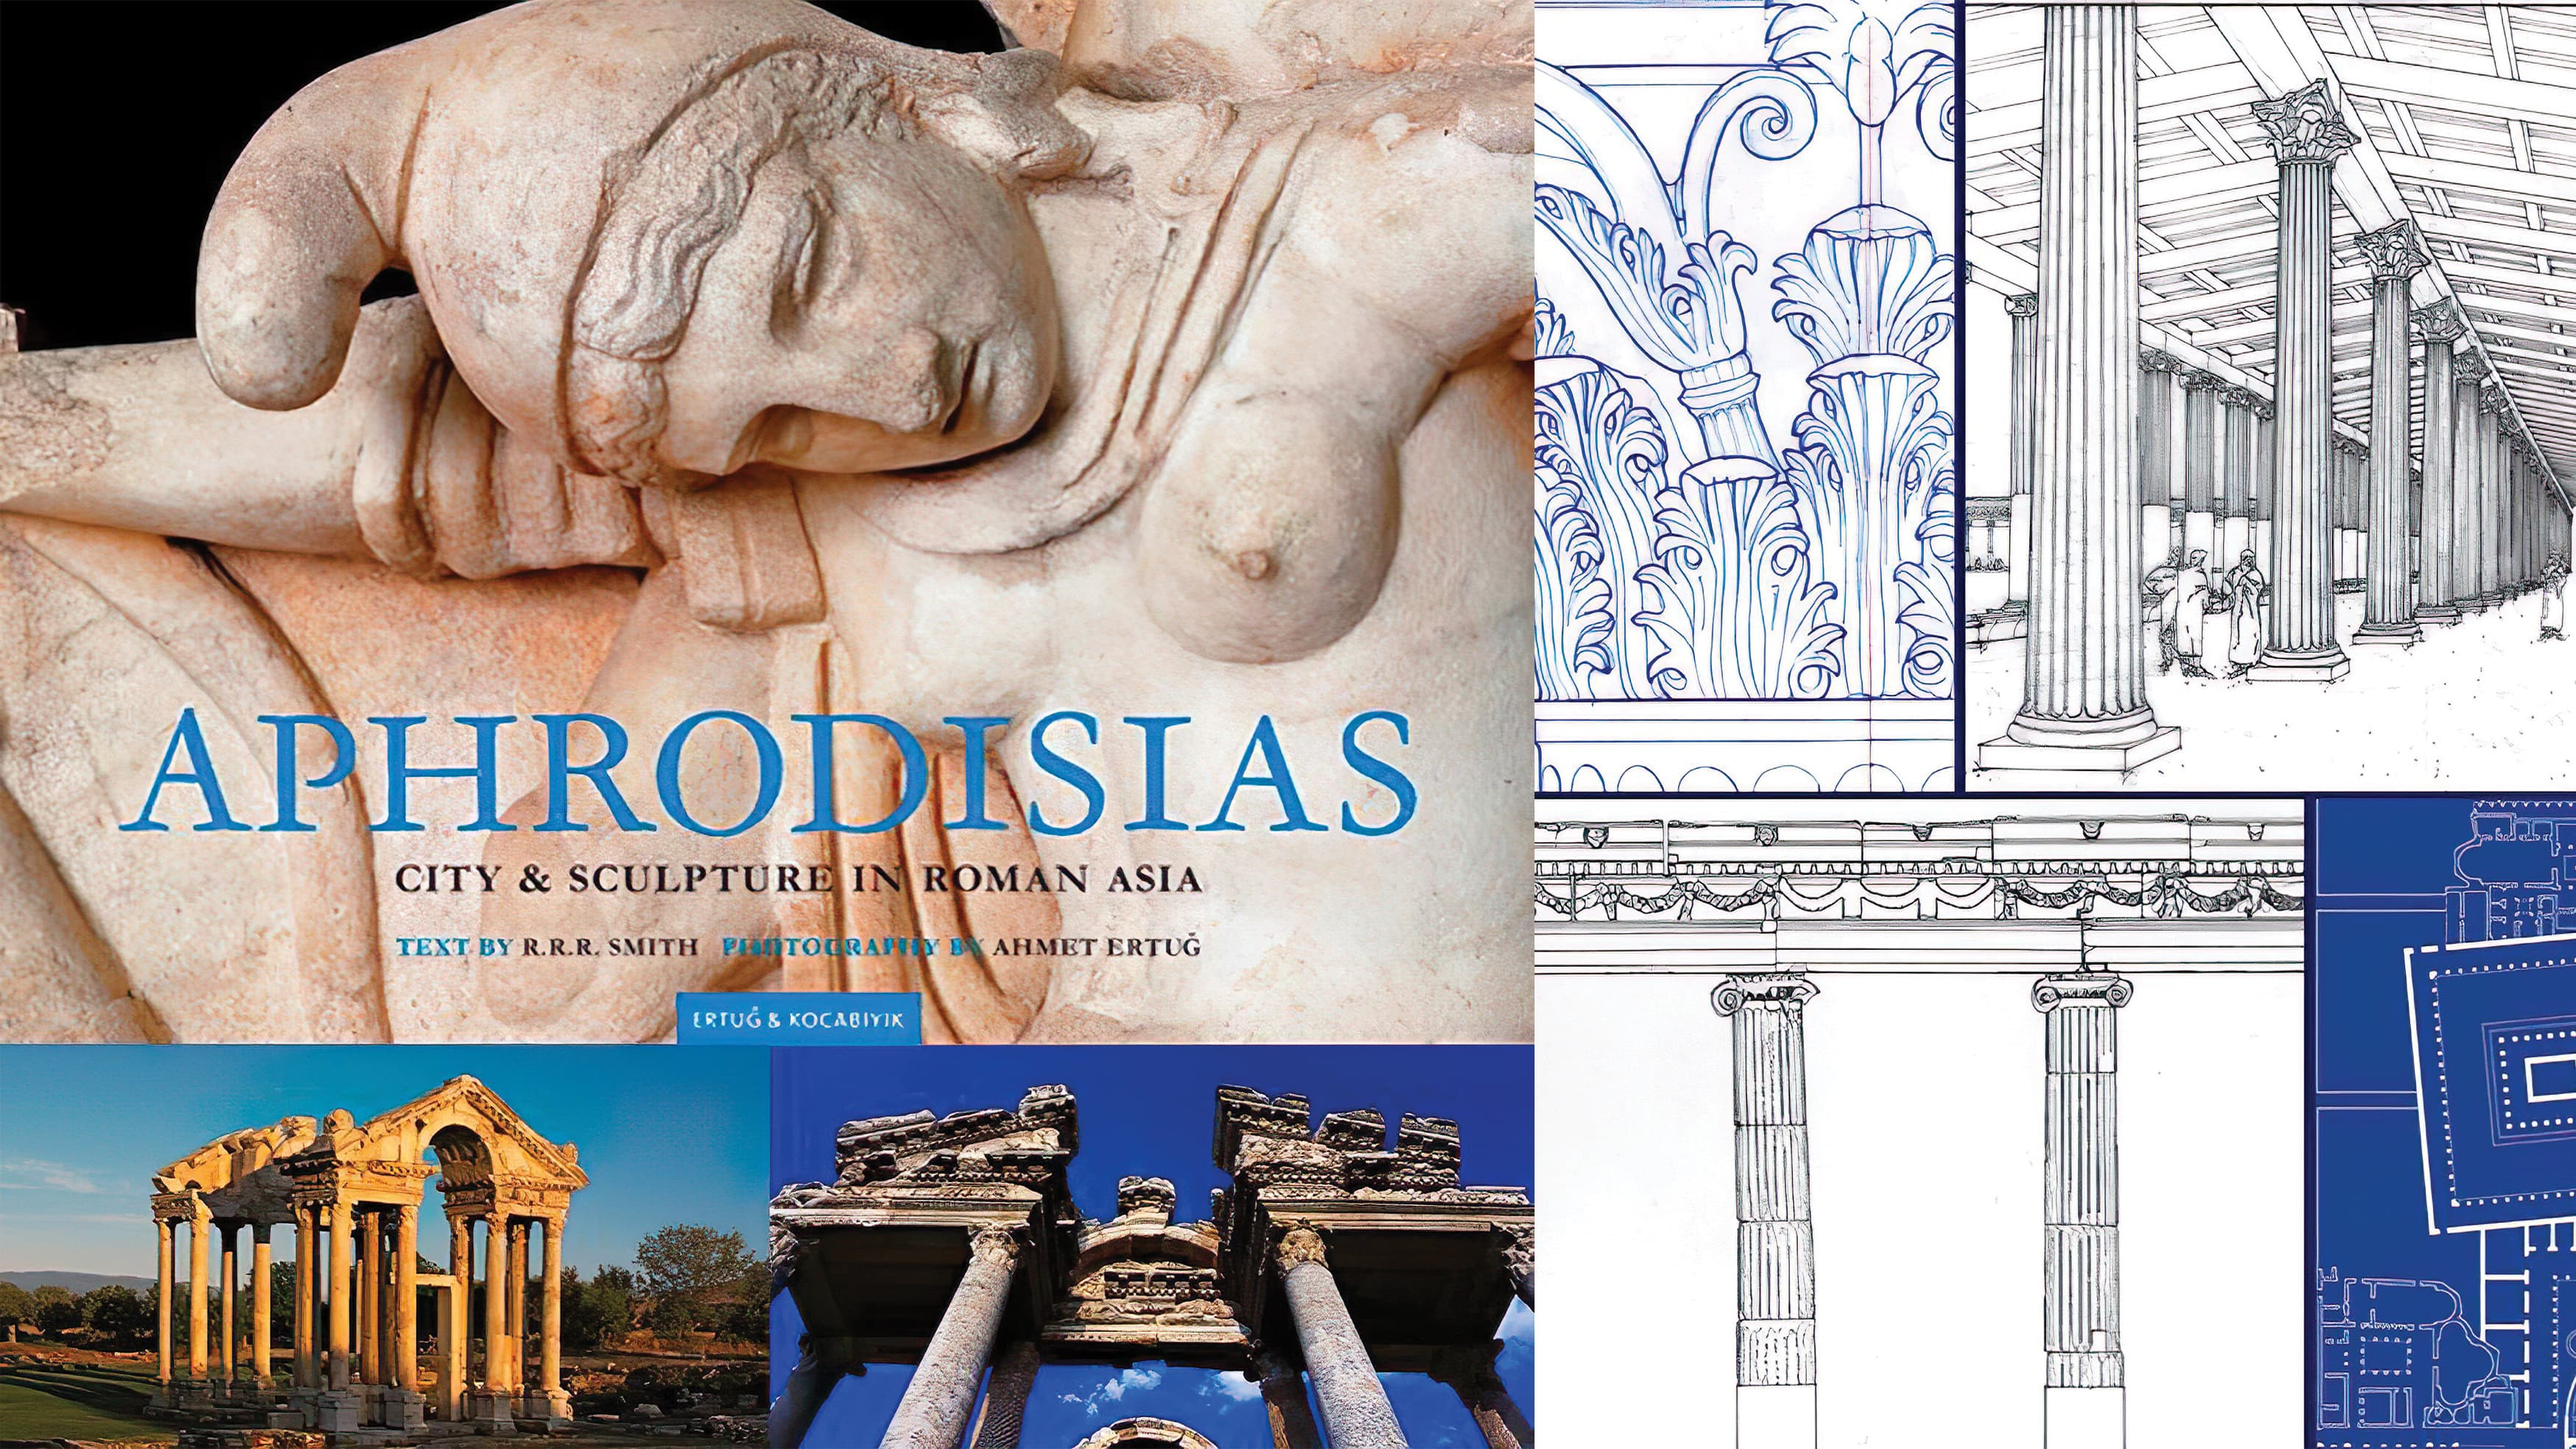 Publication of Aphrodisias in Turkey, in which drawings by Harry Mark were featured